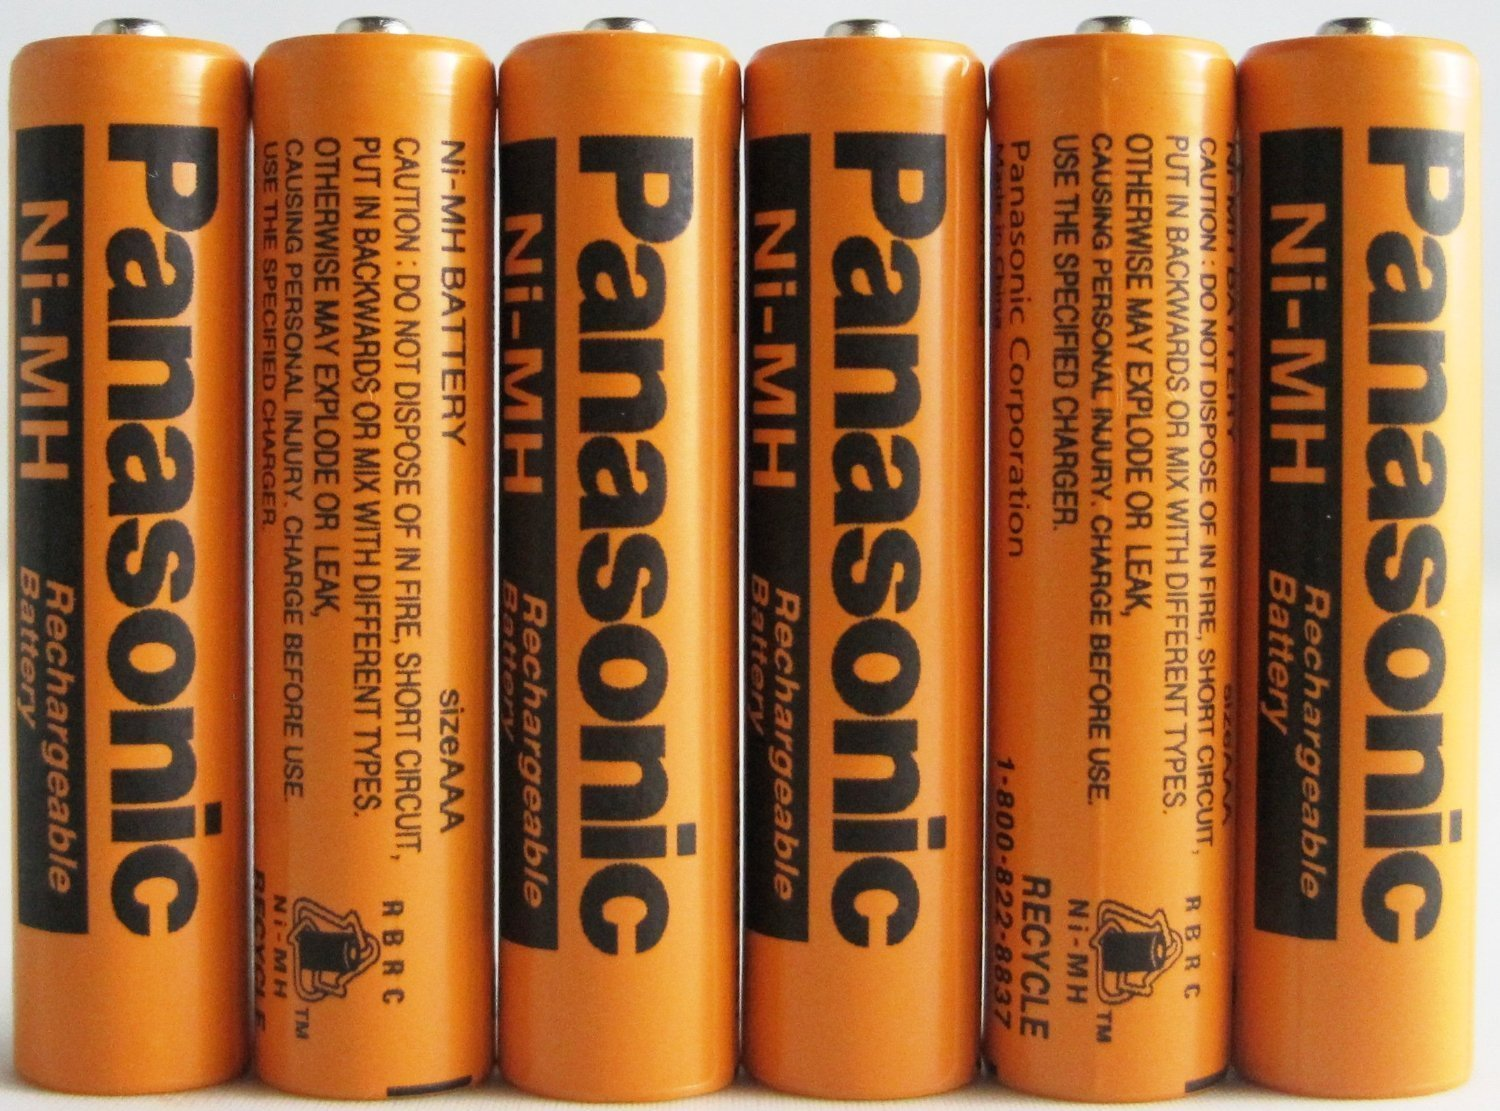 Panasonic HHR-75AAA/B-6 Ni-MH Rechargeable MOTLK Battery for Cordless Phones, 700 mAh, 6 Count (Pack of 3)